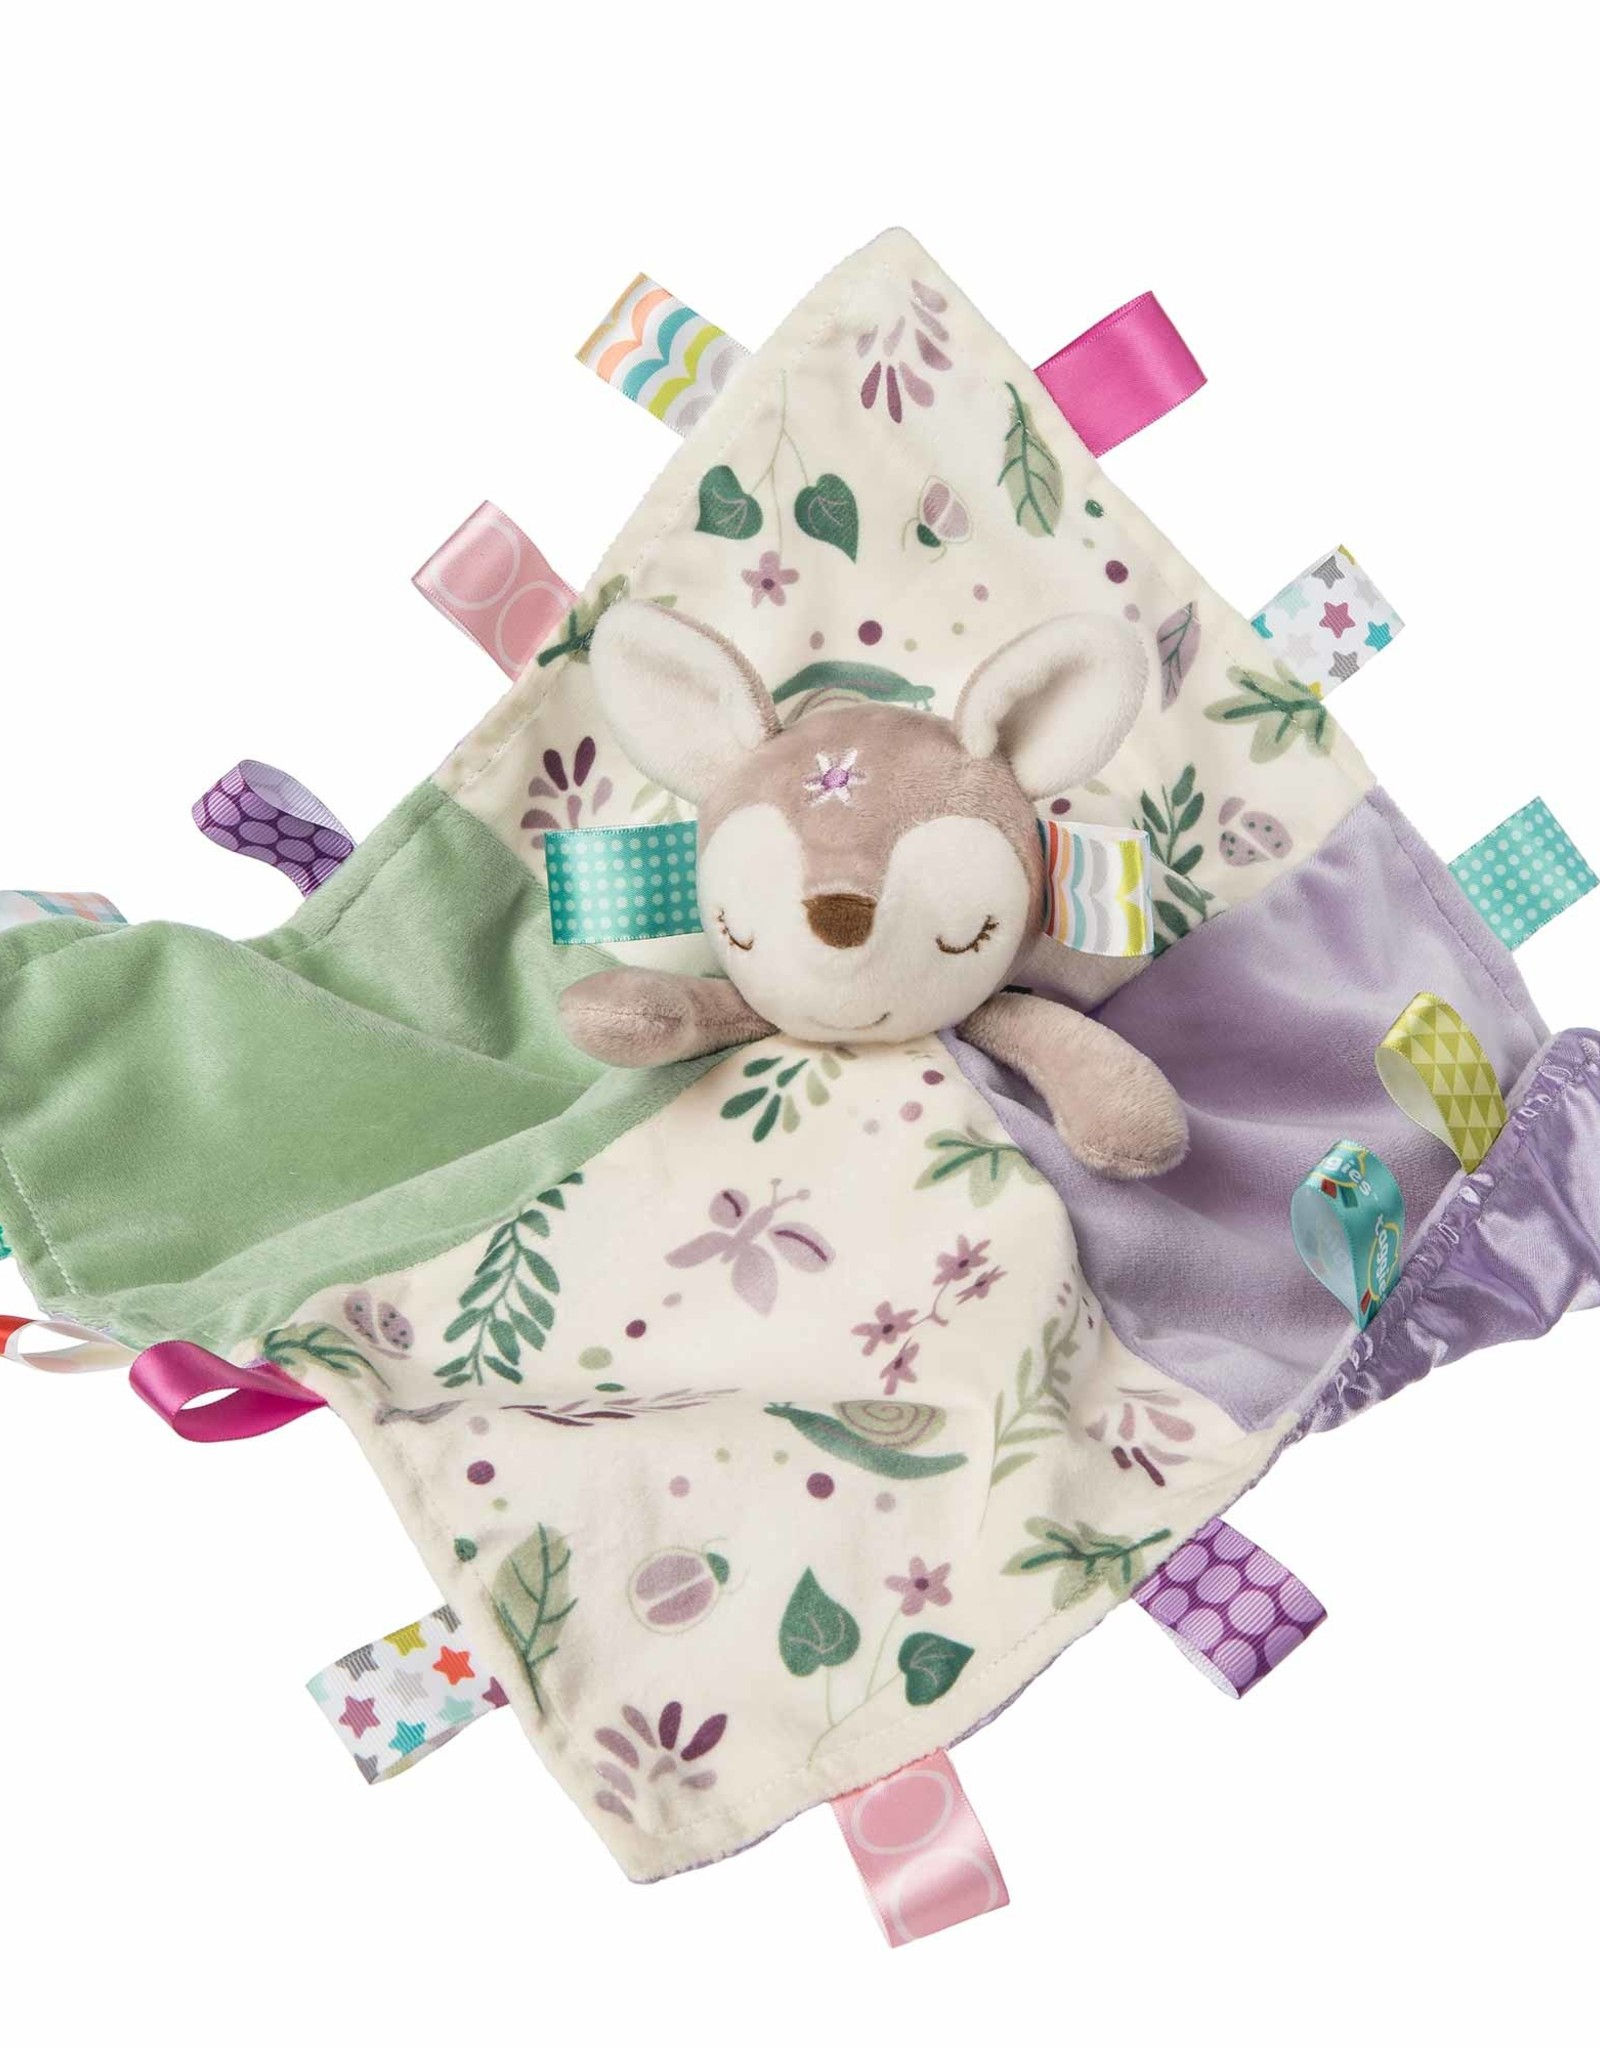 Mary Meyer Taggies Character Blanket - Flora Fawn - 13""